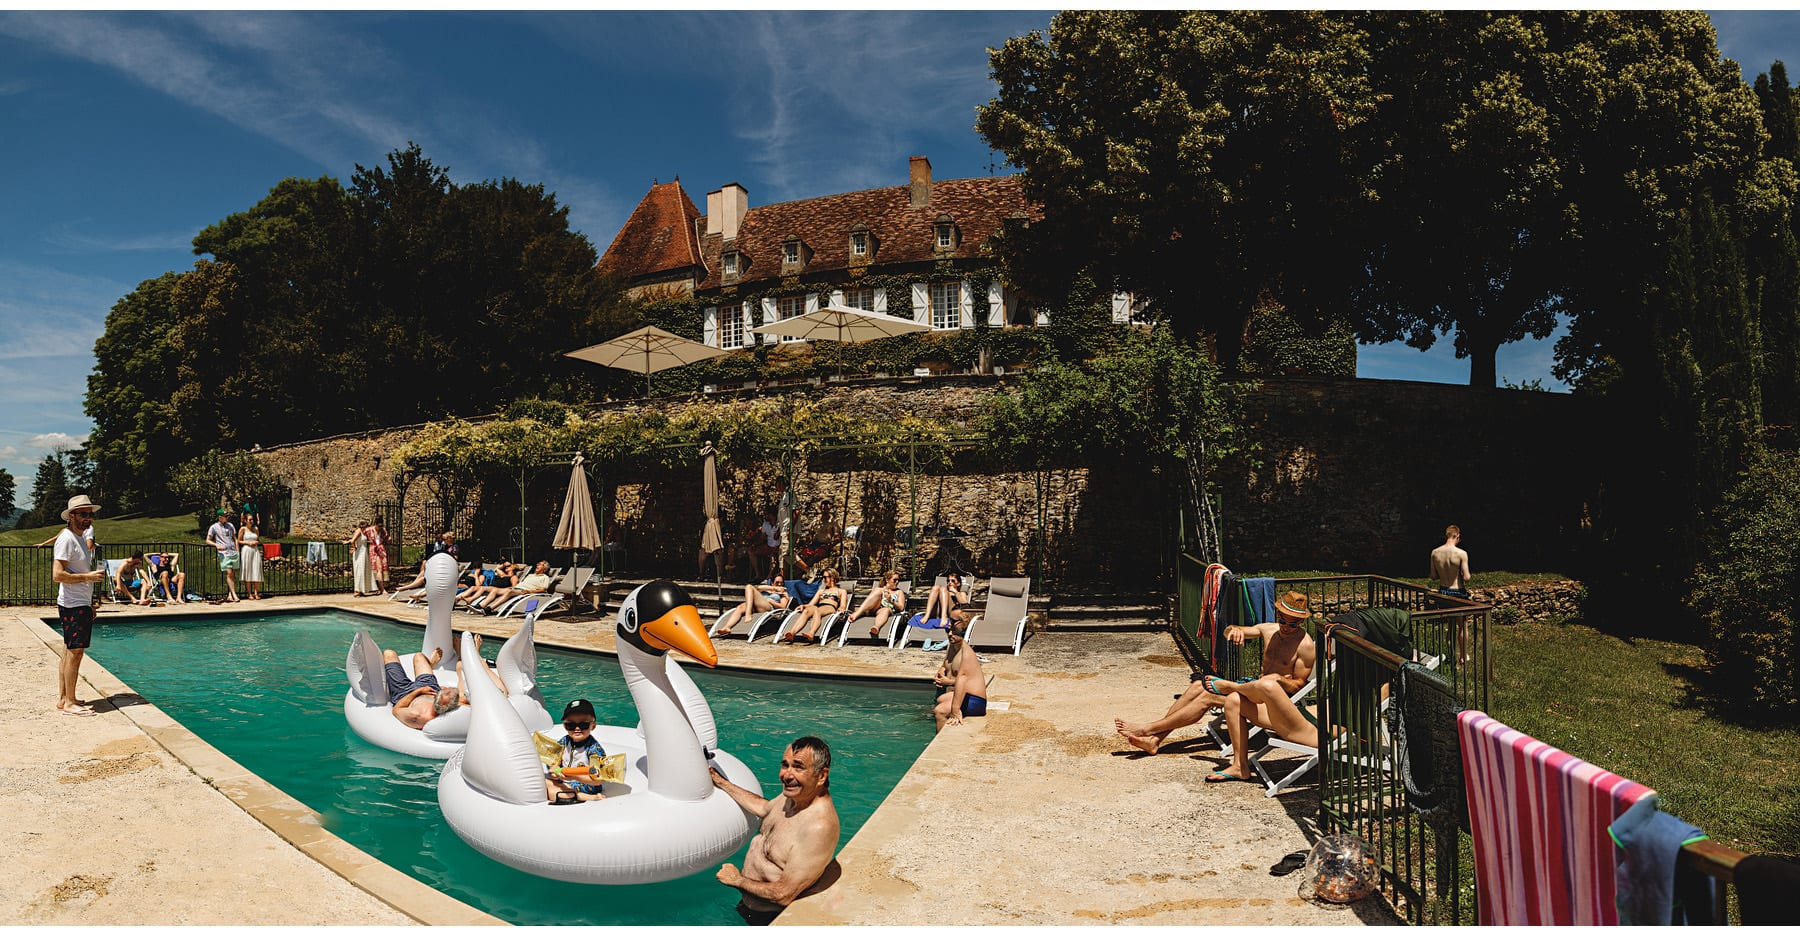 Everyone enjoying the pool at Château Cazenac